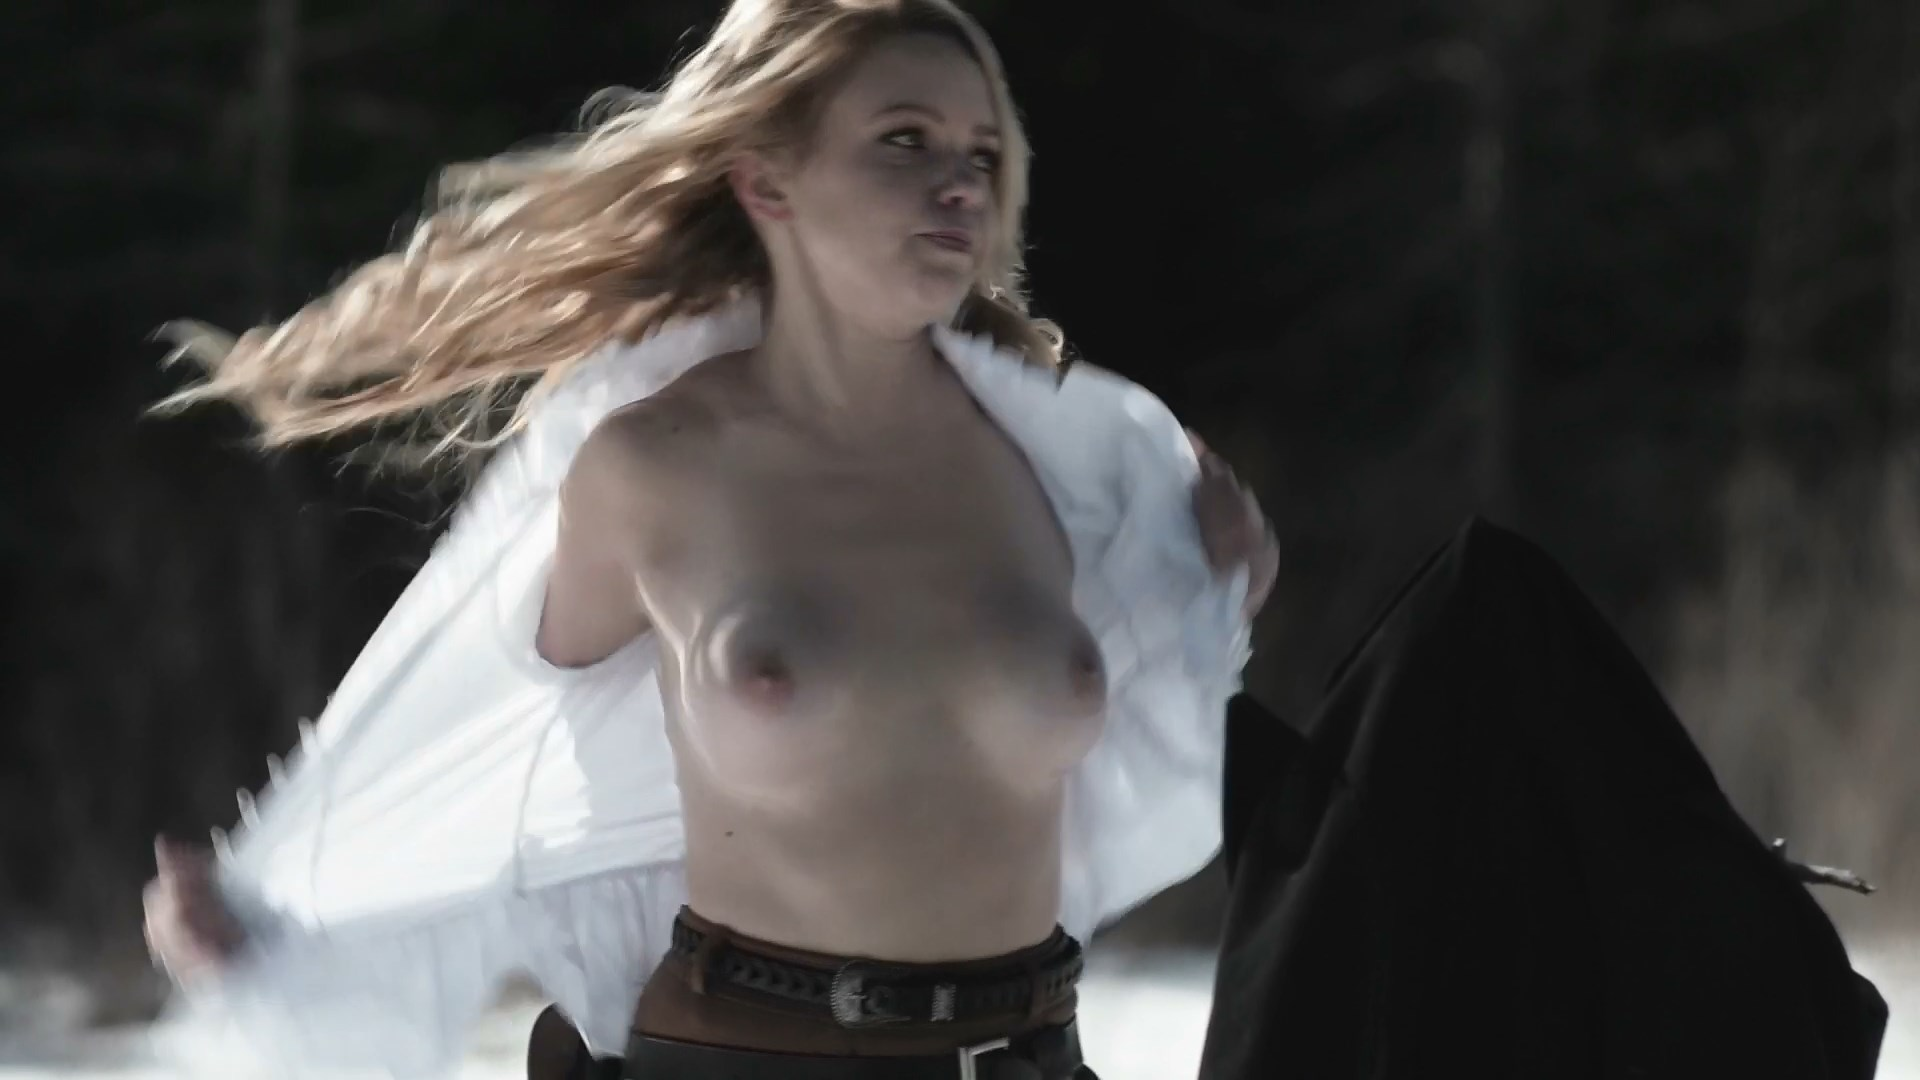 Karin Brauns nude - Once Upon a Time in Deadwood (2019)